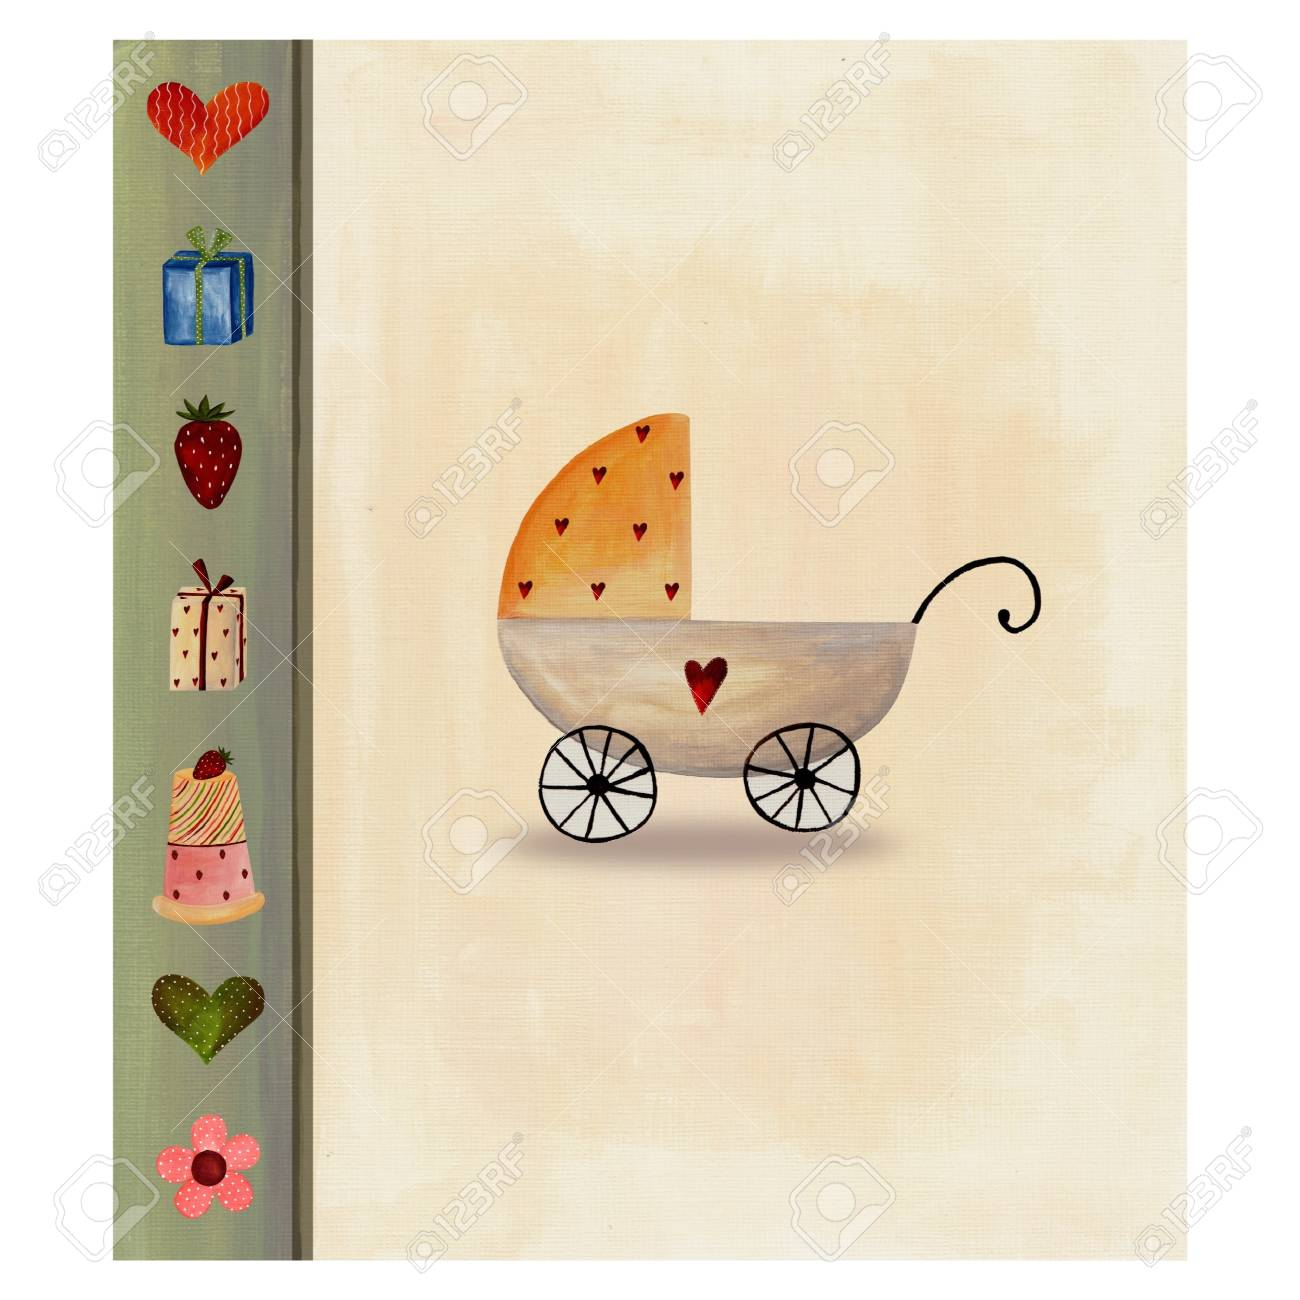 Baby arrival announcement card Stock Photo - 11696634